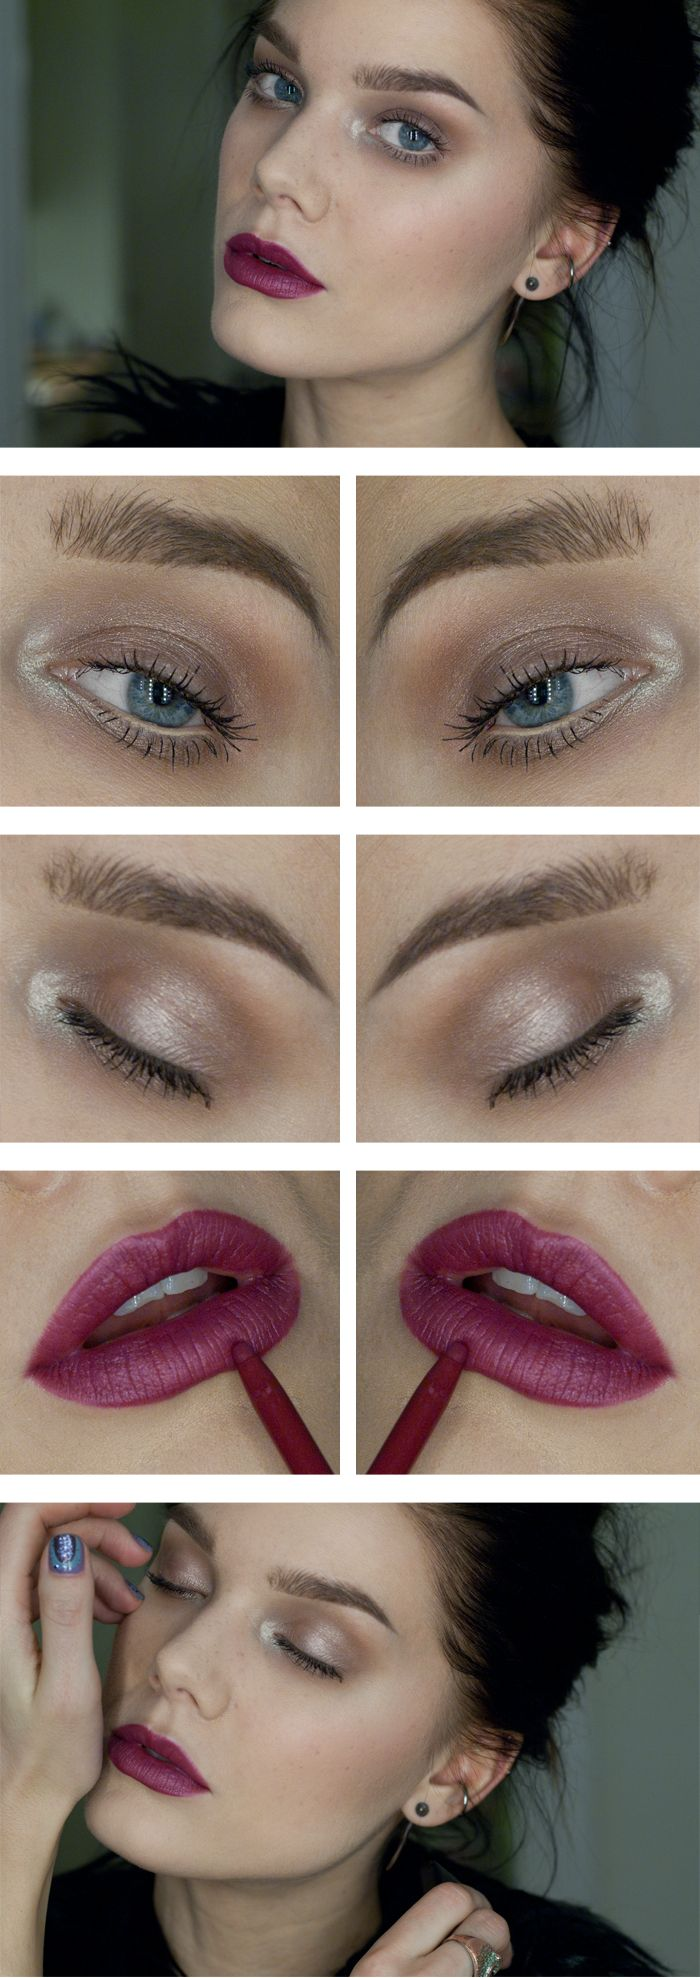 """Today's Look : """"Lost in a Daydream"""" -Linda Hallberg (a taupe-y smokey eye with a gorgeous berry lip) 11/16/13"""